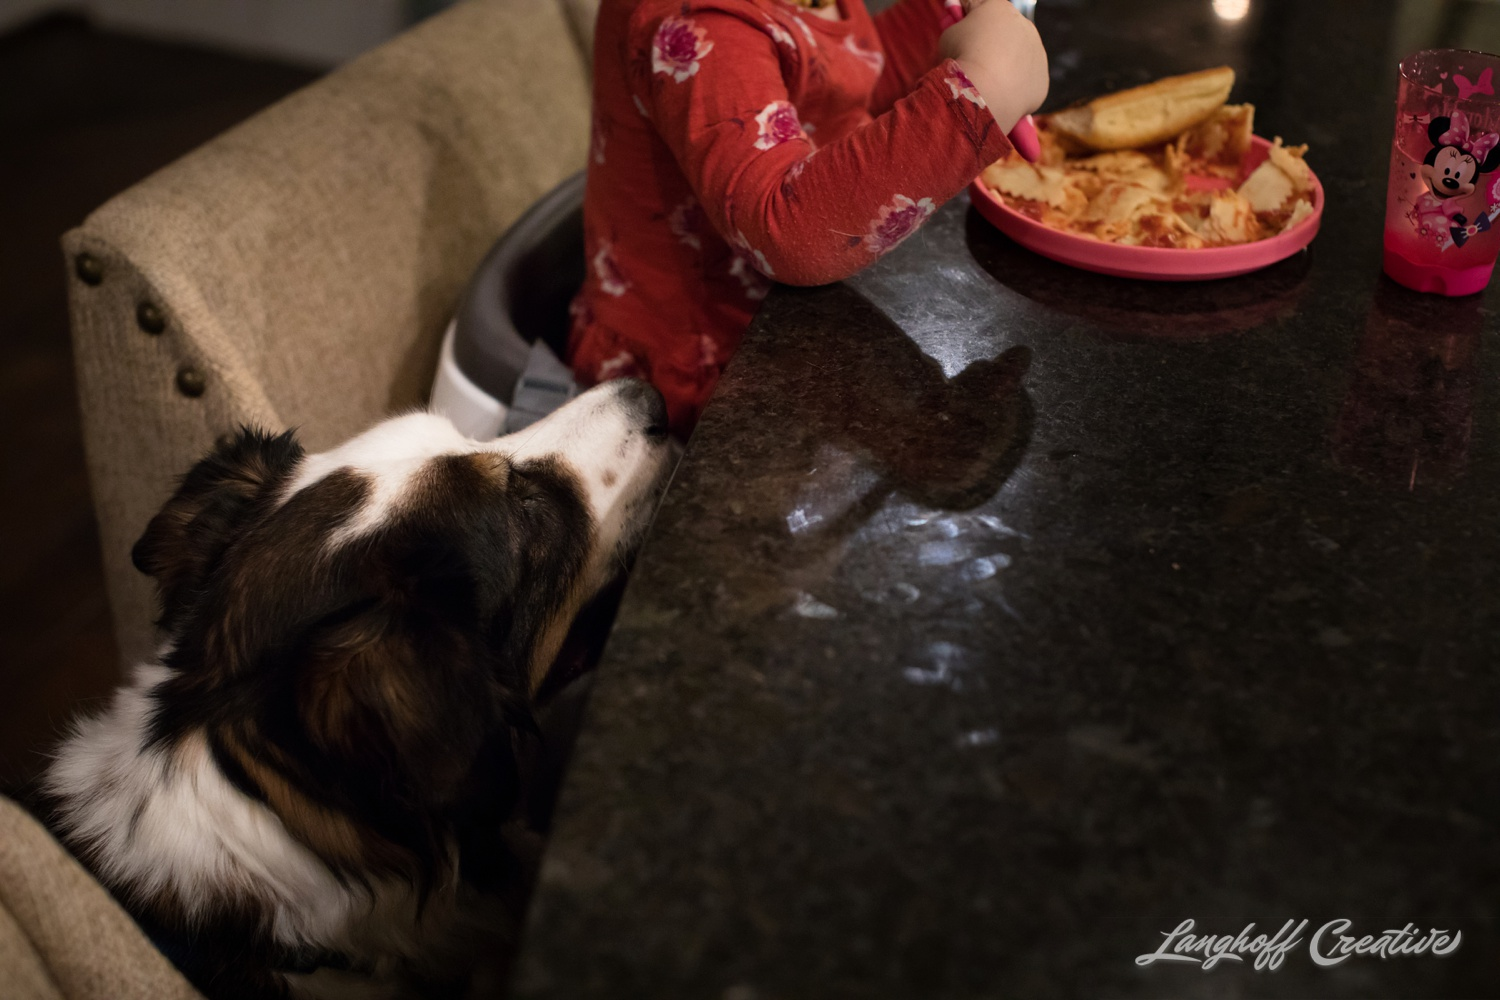 20171125-McGrathChristmas-DayInTheLife-Holidays-LanghoffCreative-RealLifeSession-DocumentaryFamilyPhotography-RDUphotographer-26-photo.jpg